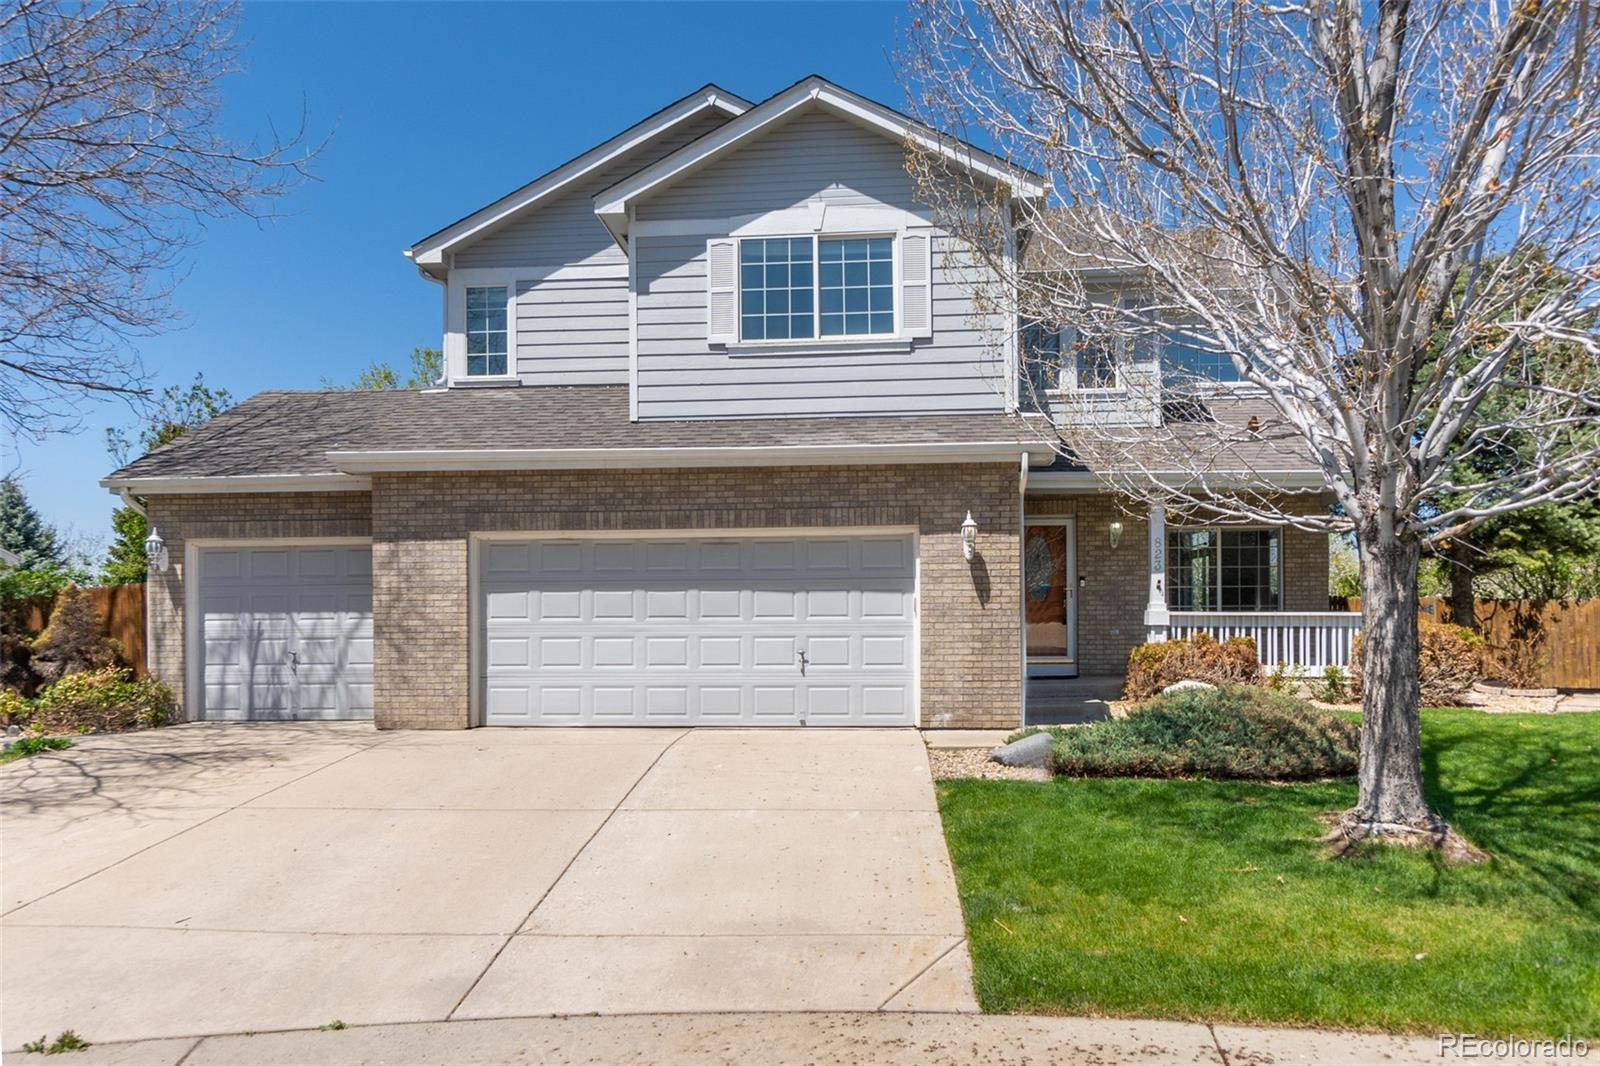 823 W 126th Place, Westminster, CO 80234 - #: 3061400